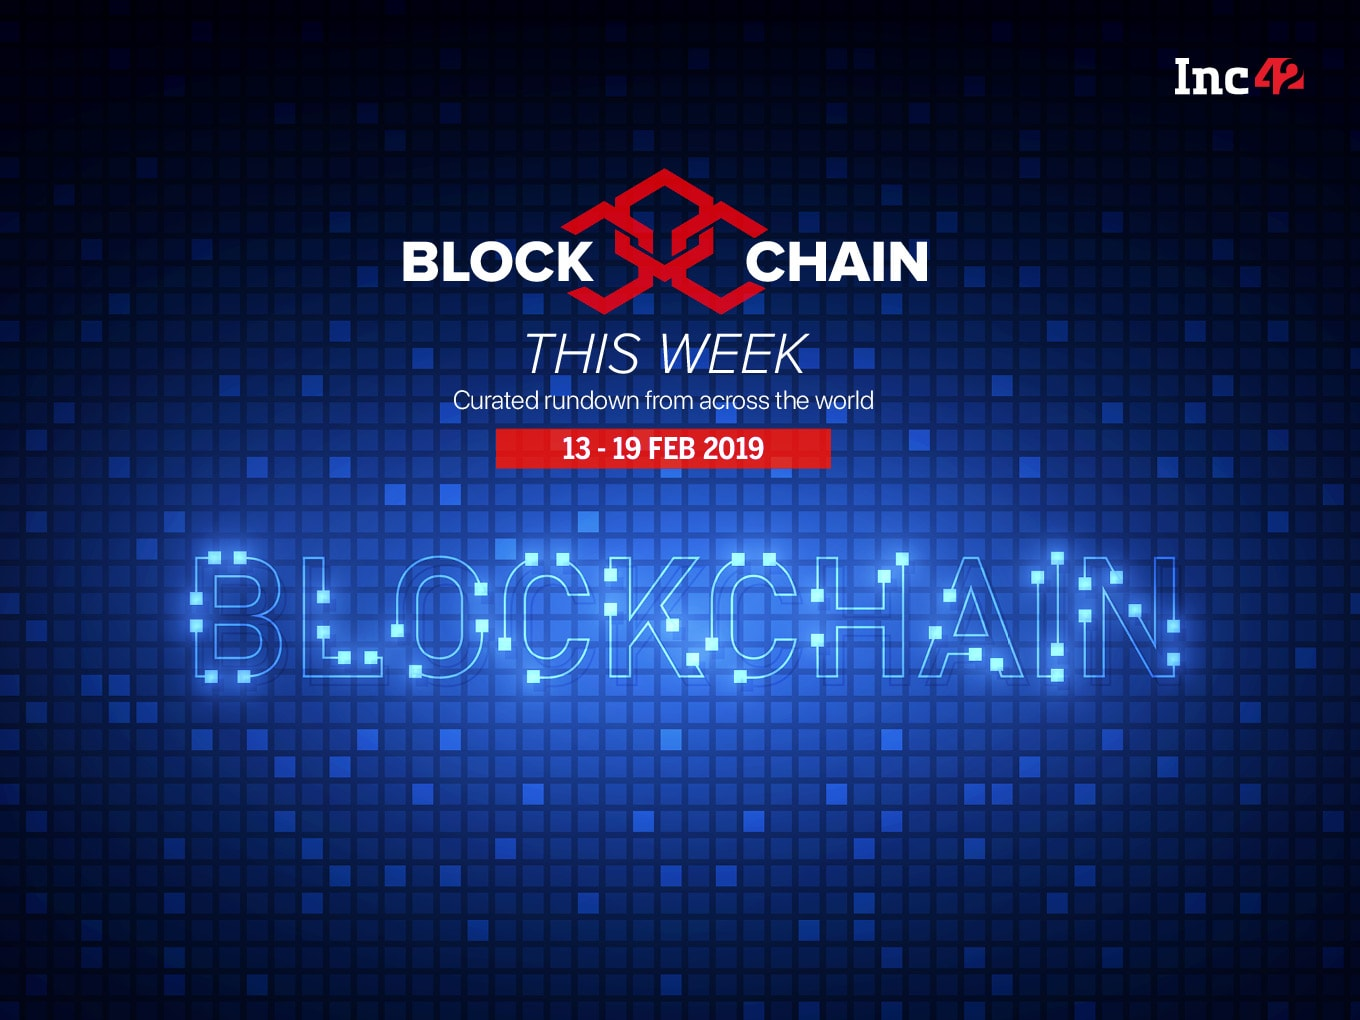 Blockchain This Week: Government-Backed Blockchain Event